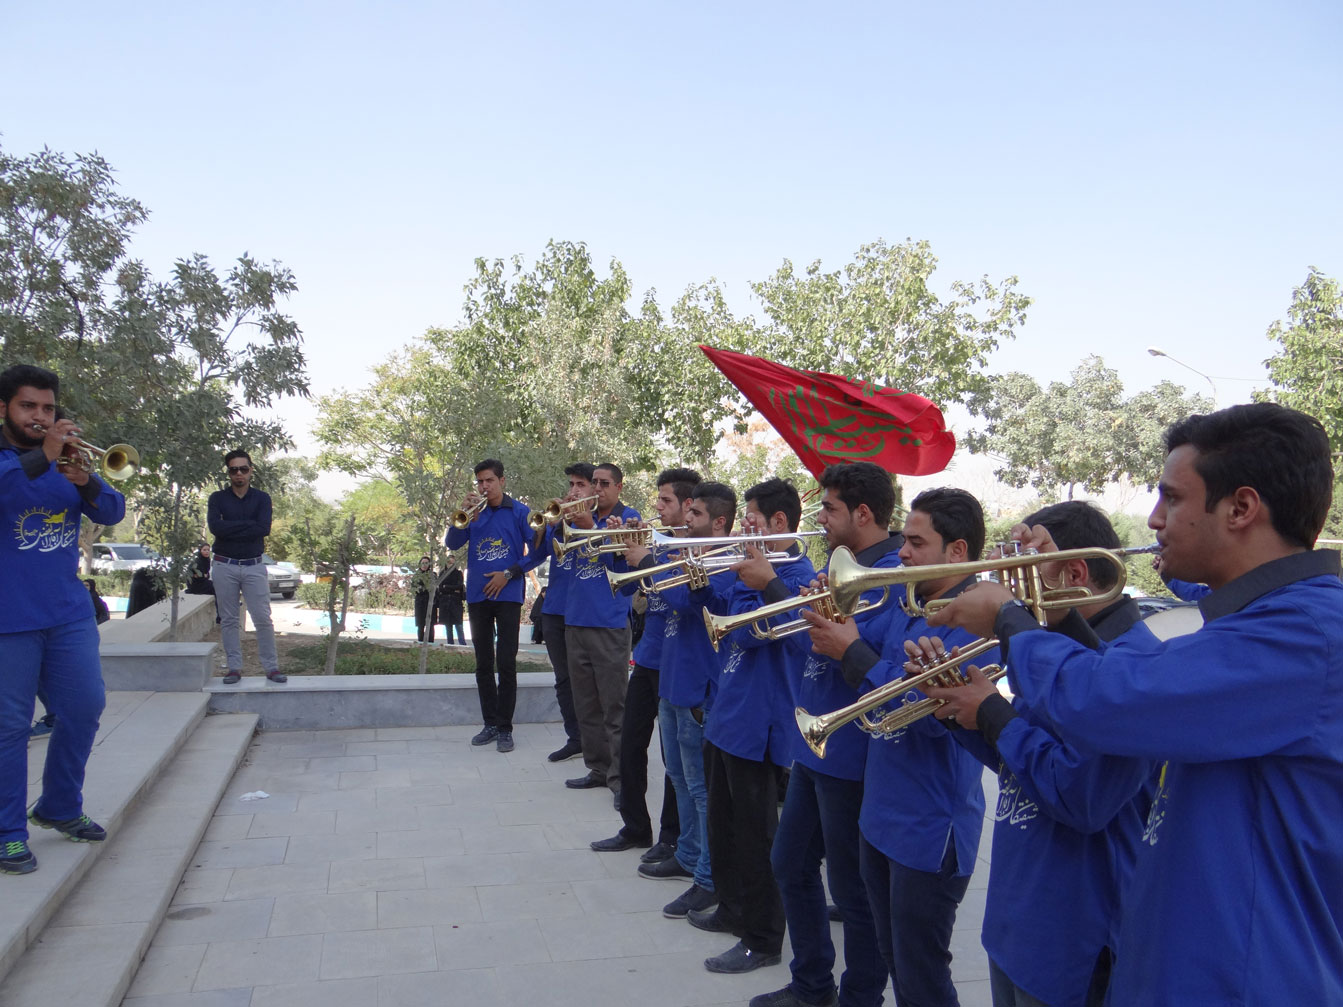 Muharram mourning ceremonies by students